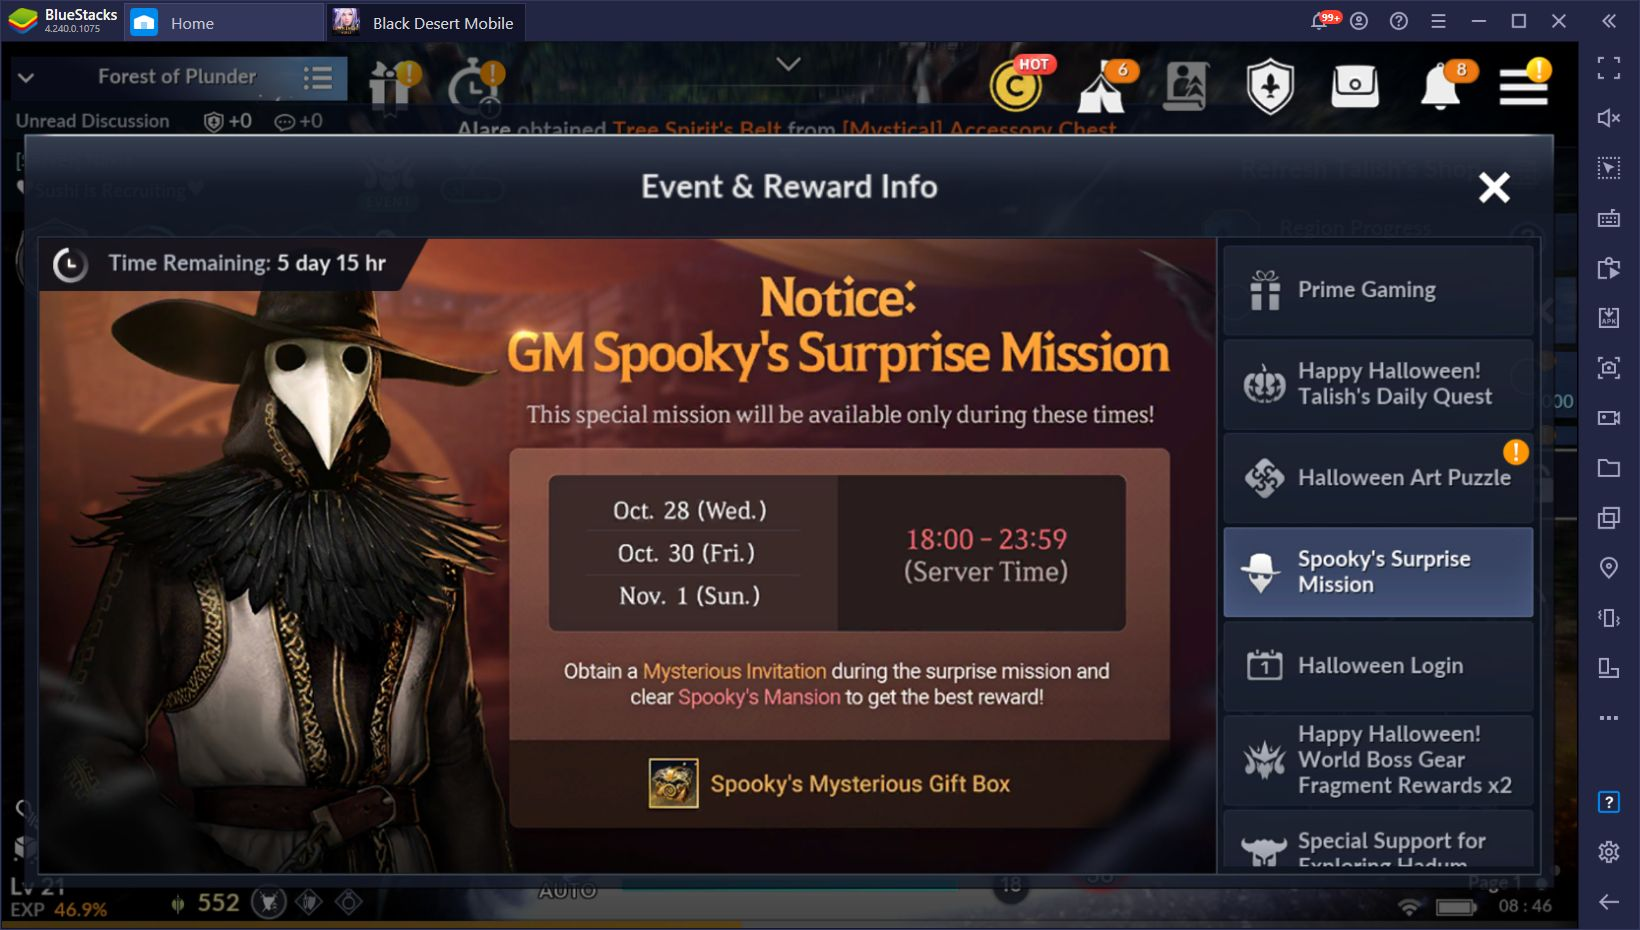 Black Desert Mobile Halloween Events 2020 Bring Tons of Prizes to the Popular Mobile MMORPG